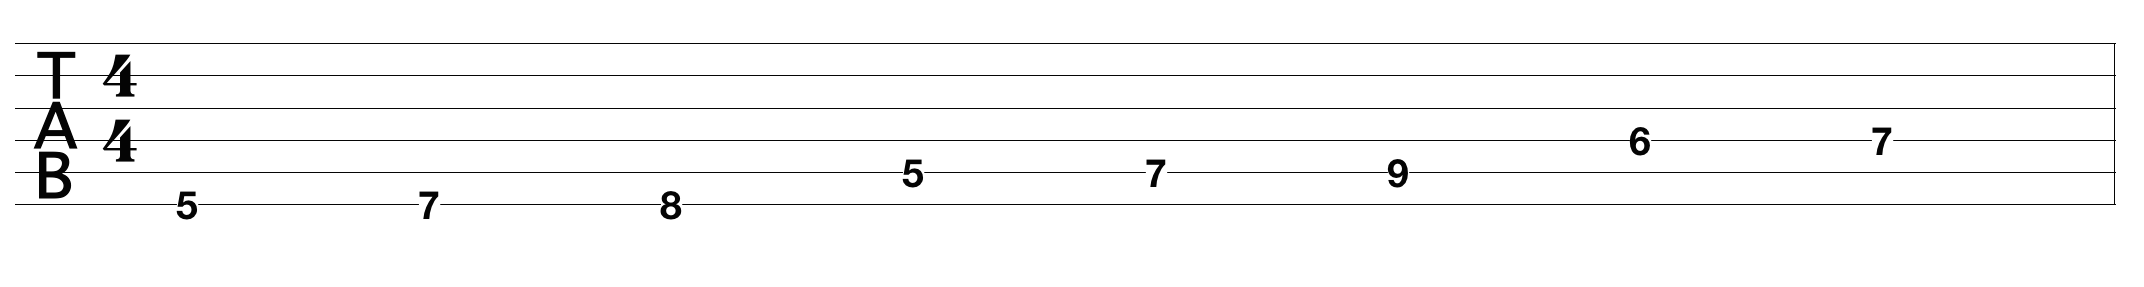 melodic-guitar-scales_1.png